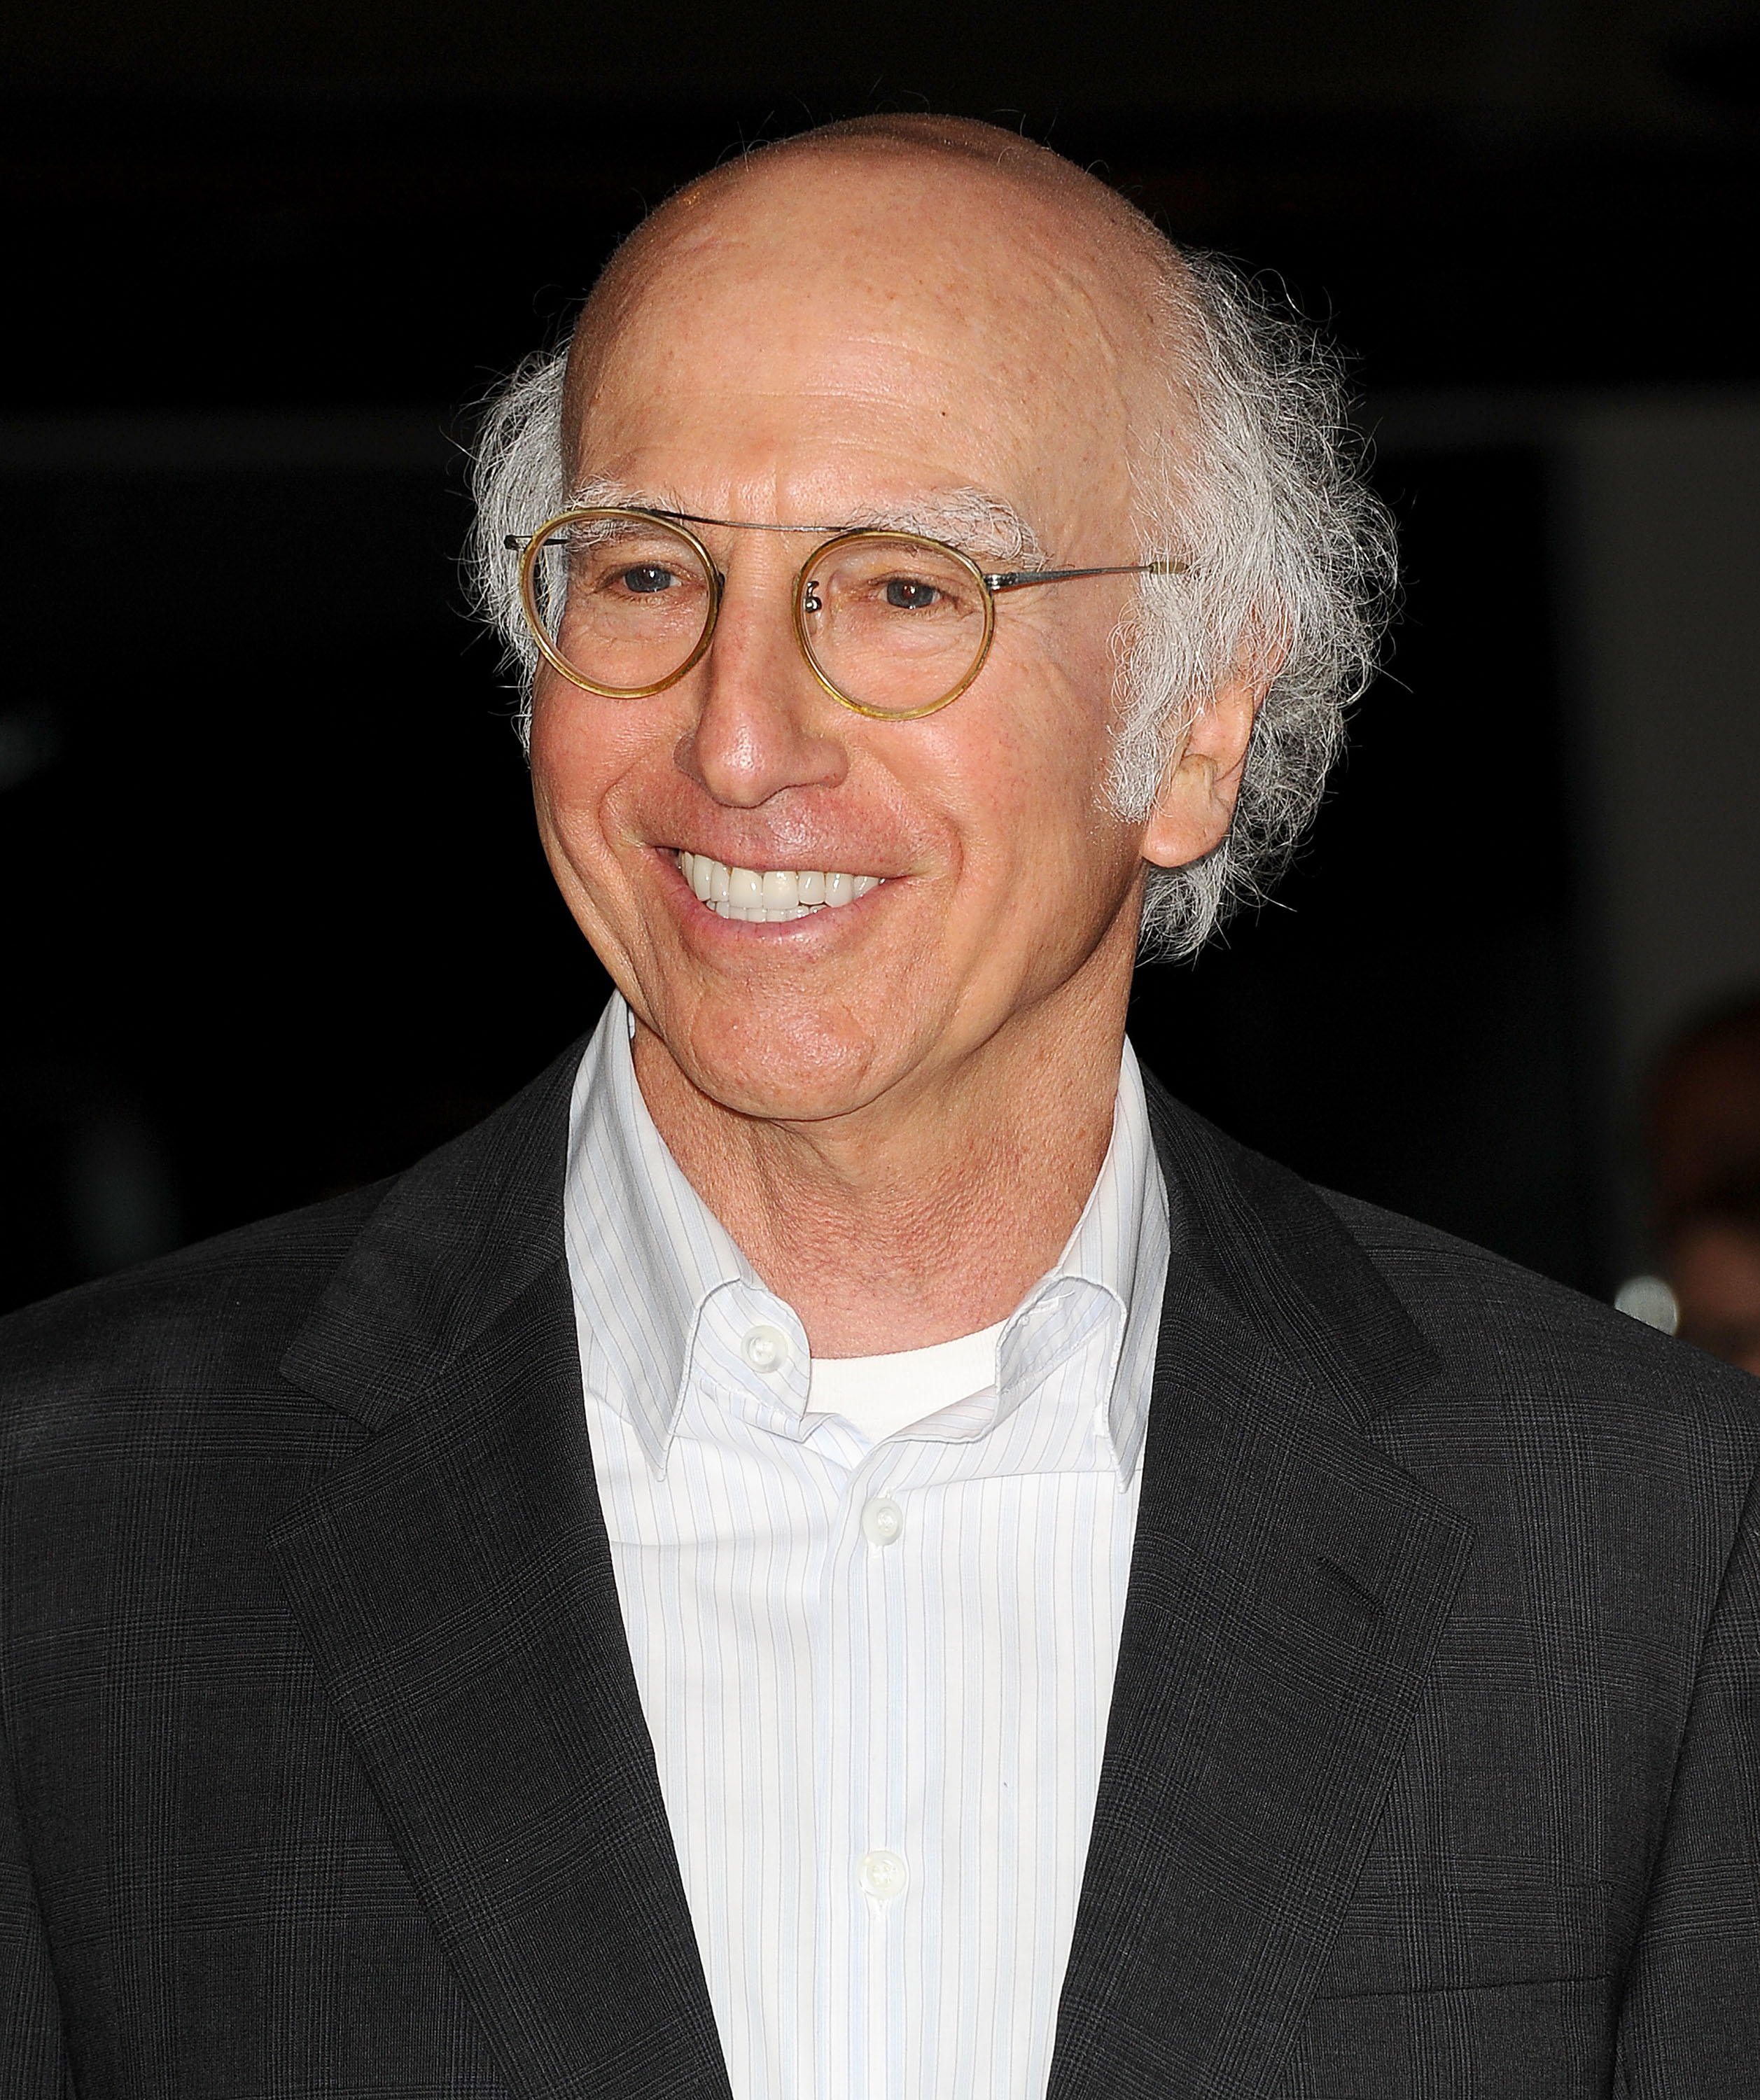 Larry David attends the premiere of  Fed Up  at Pacfiic Design Center on May 8, 2014 in West Hollywood, California.